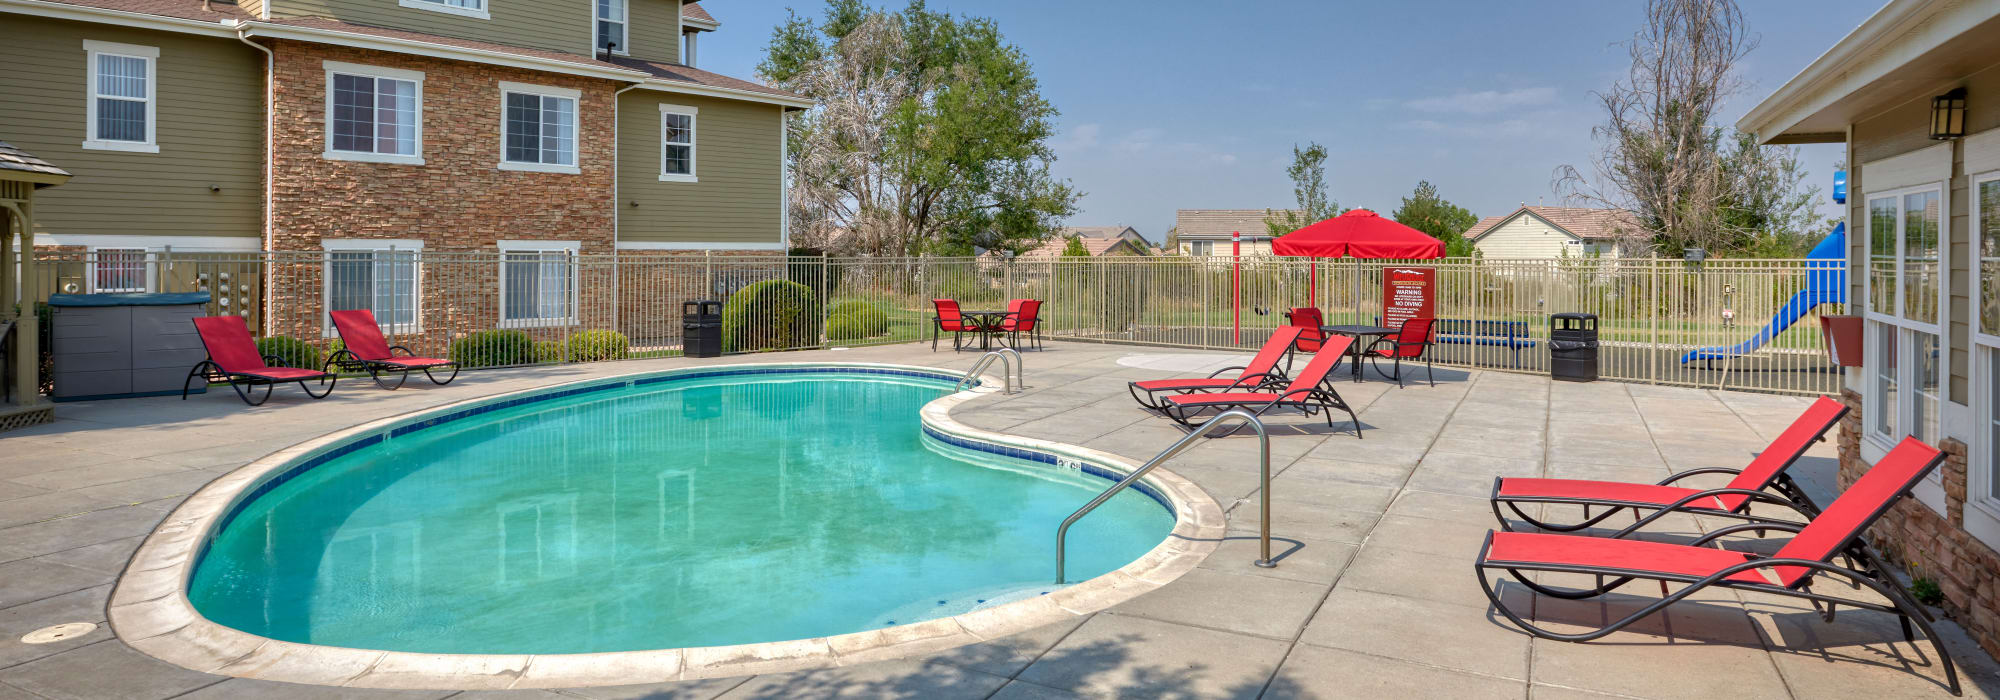 Photos of Westridge Apartments in Aurora, Colorado